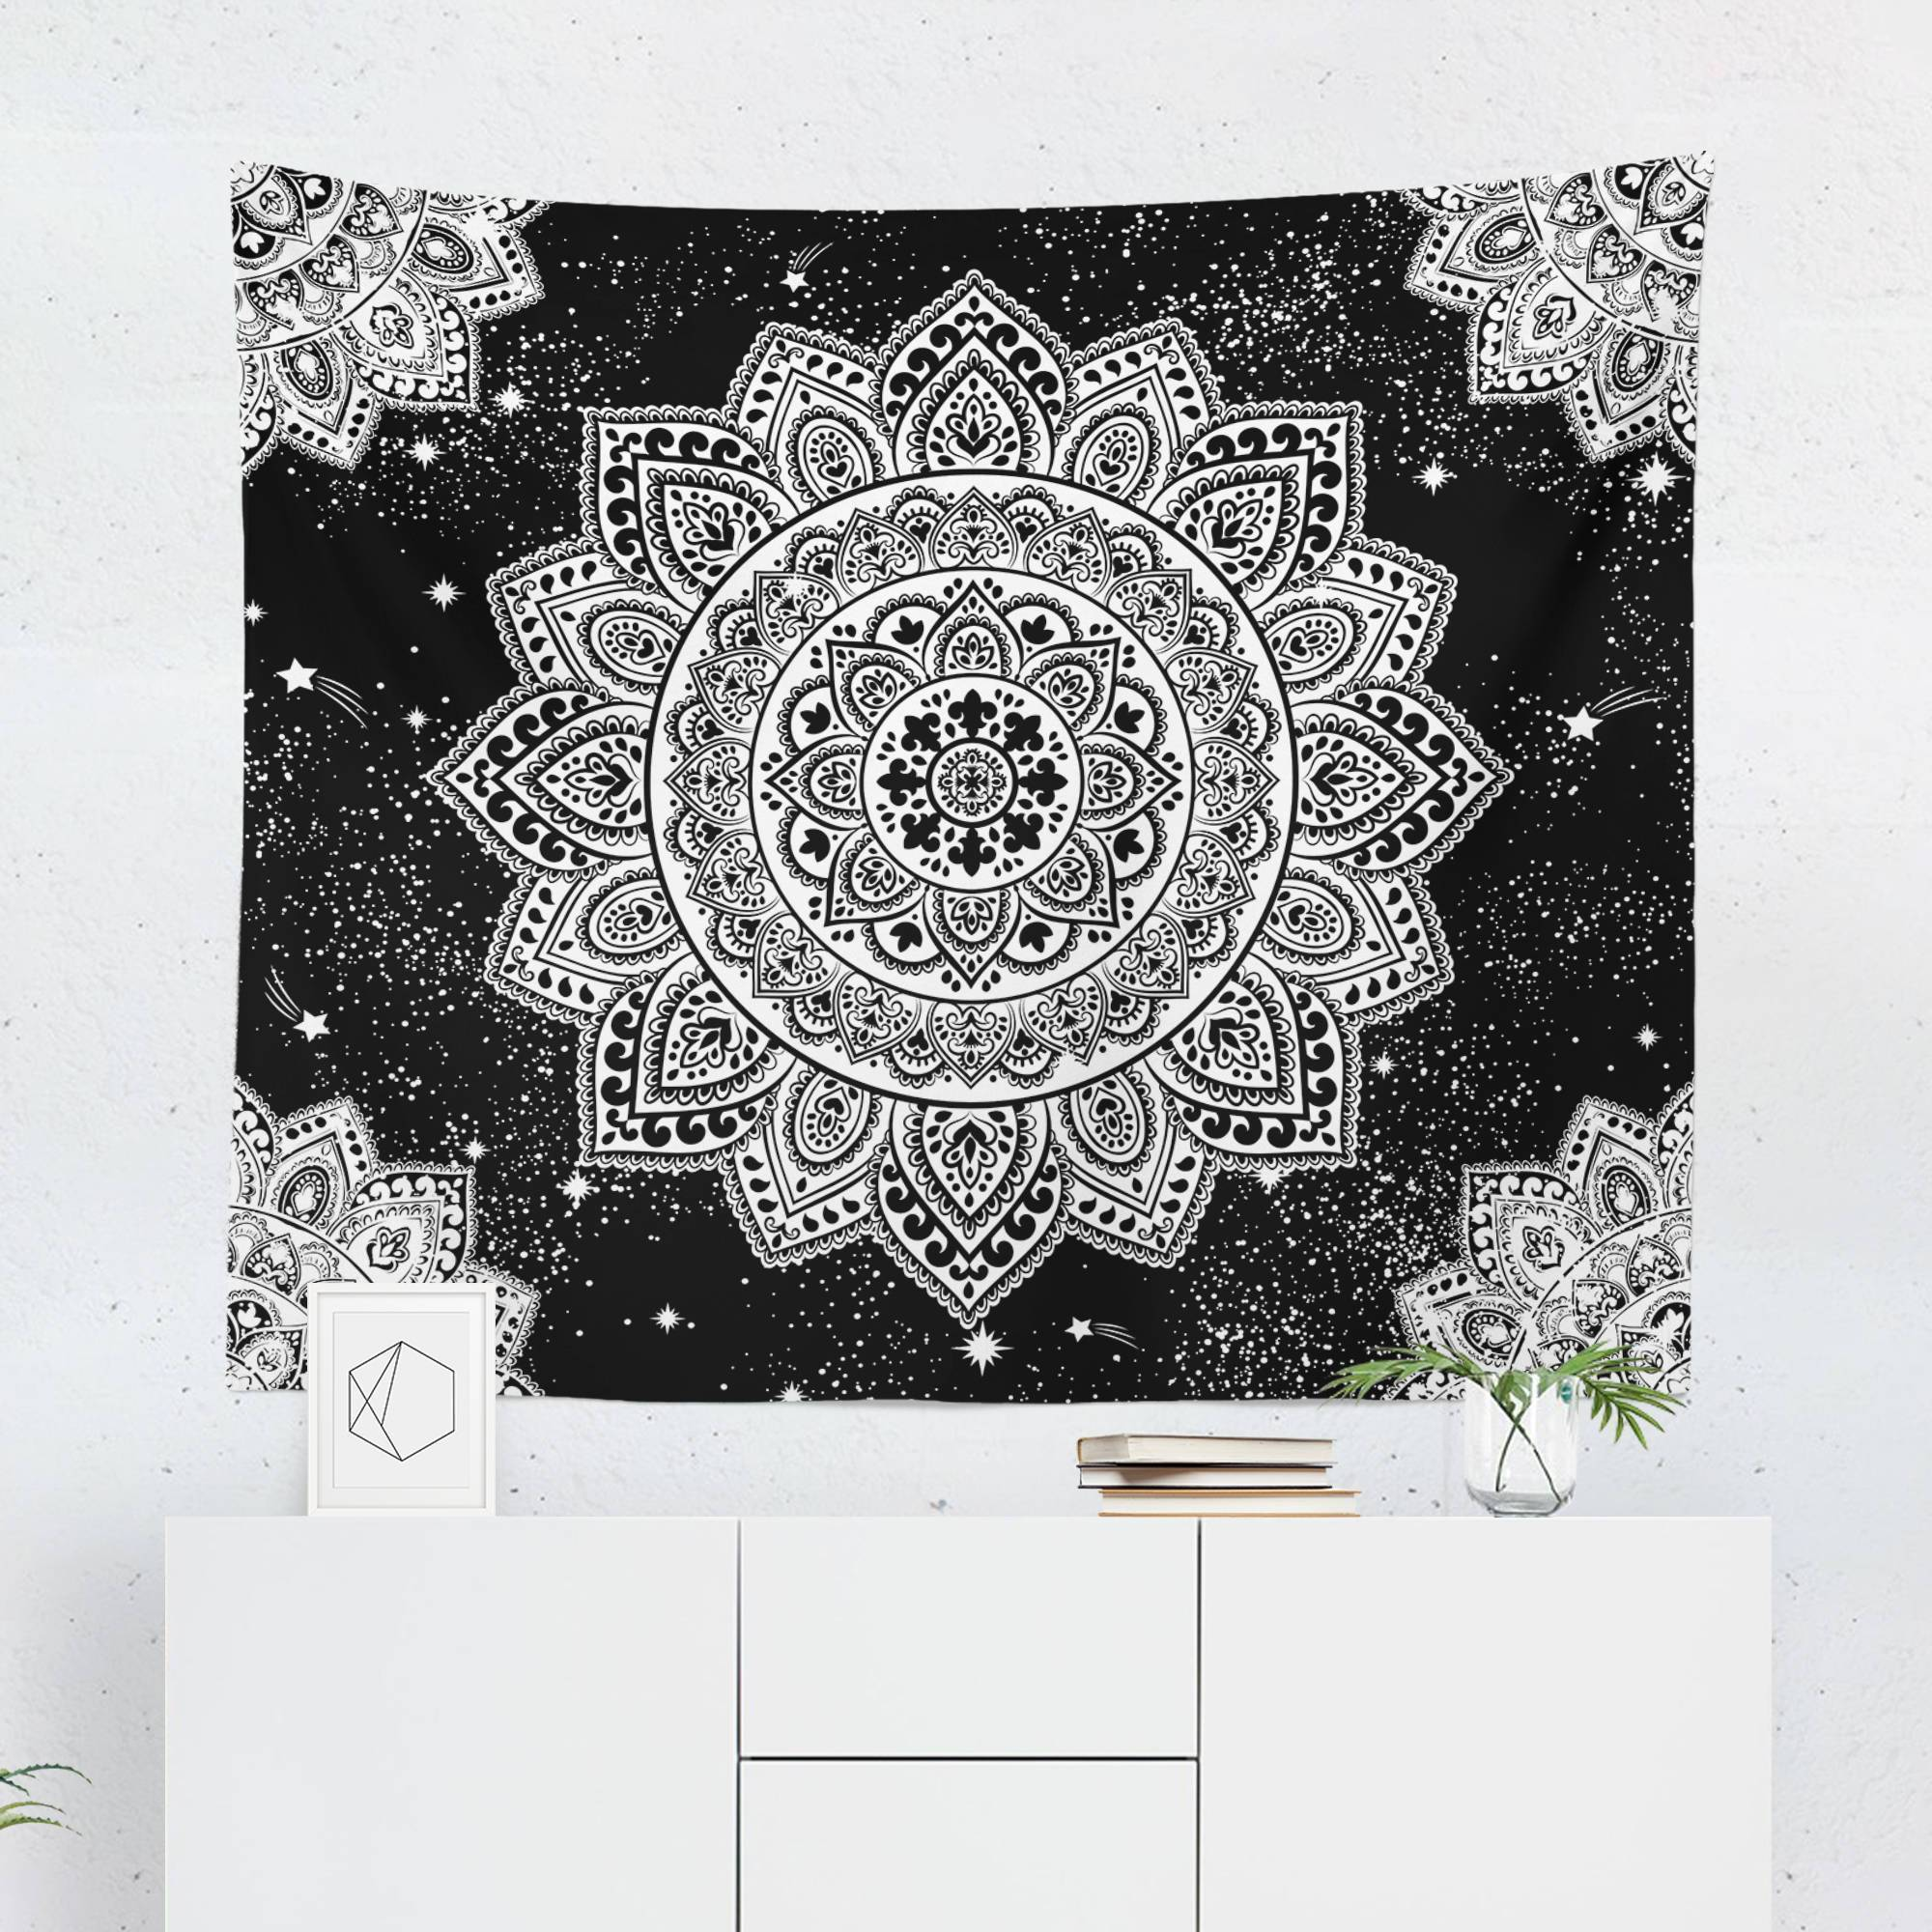 Black And White Tapestry Yinyang Wall Hanging Tapestry Mandala Tapestries Indian Traditio Mandala Tapestries Wall Hangings Tapestry Bedroom Mandala Tapestry